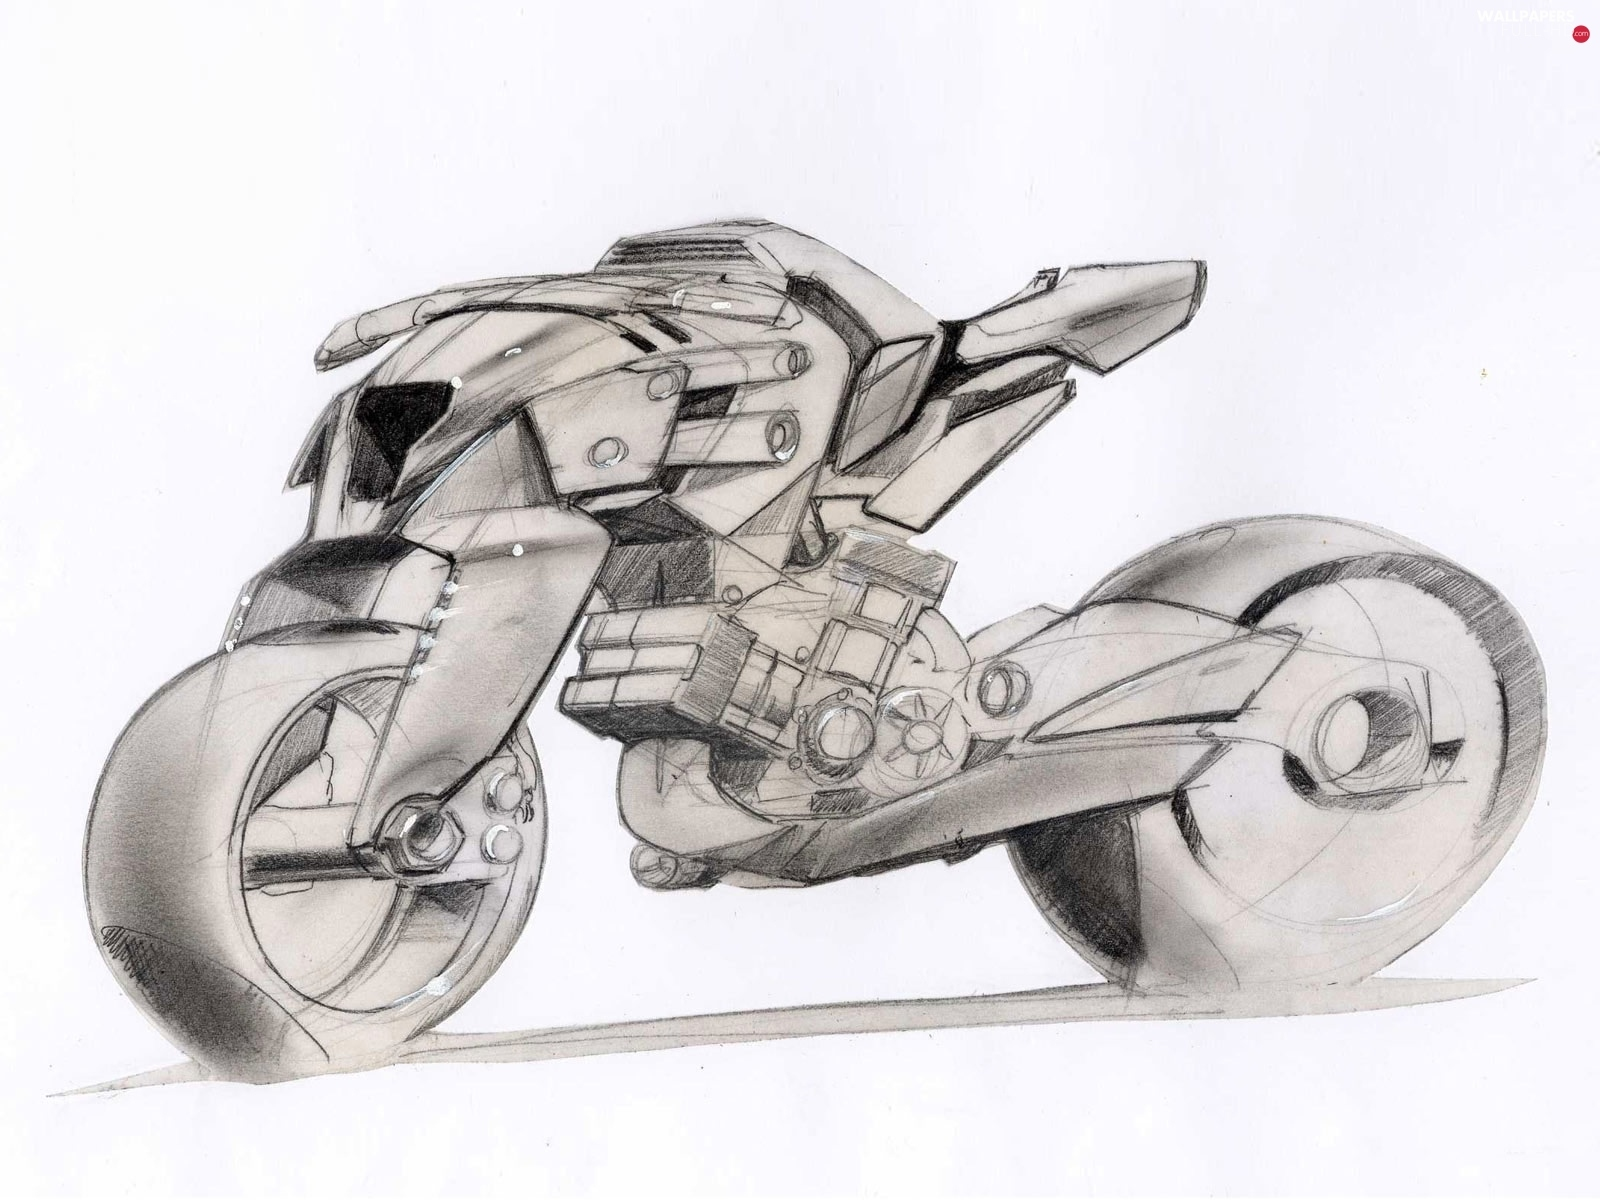 Draft, designed, Aprilia FV2 1200